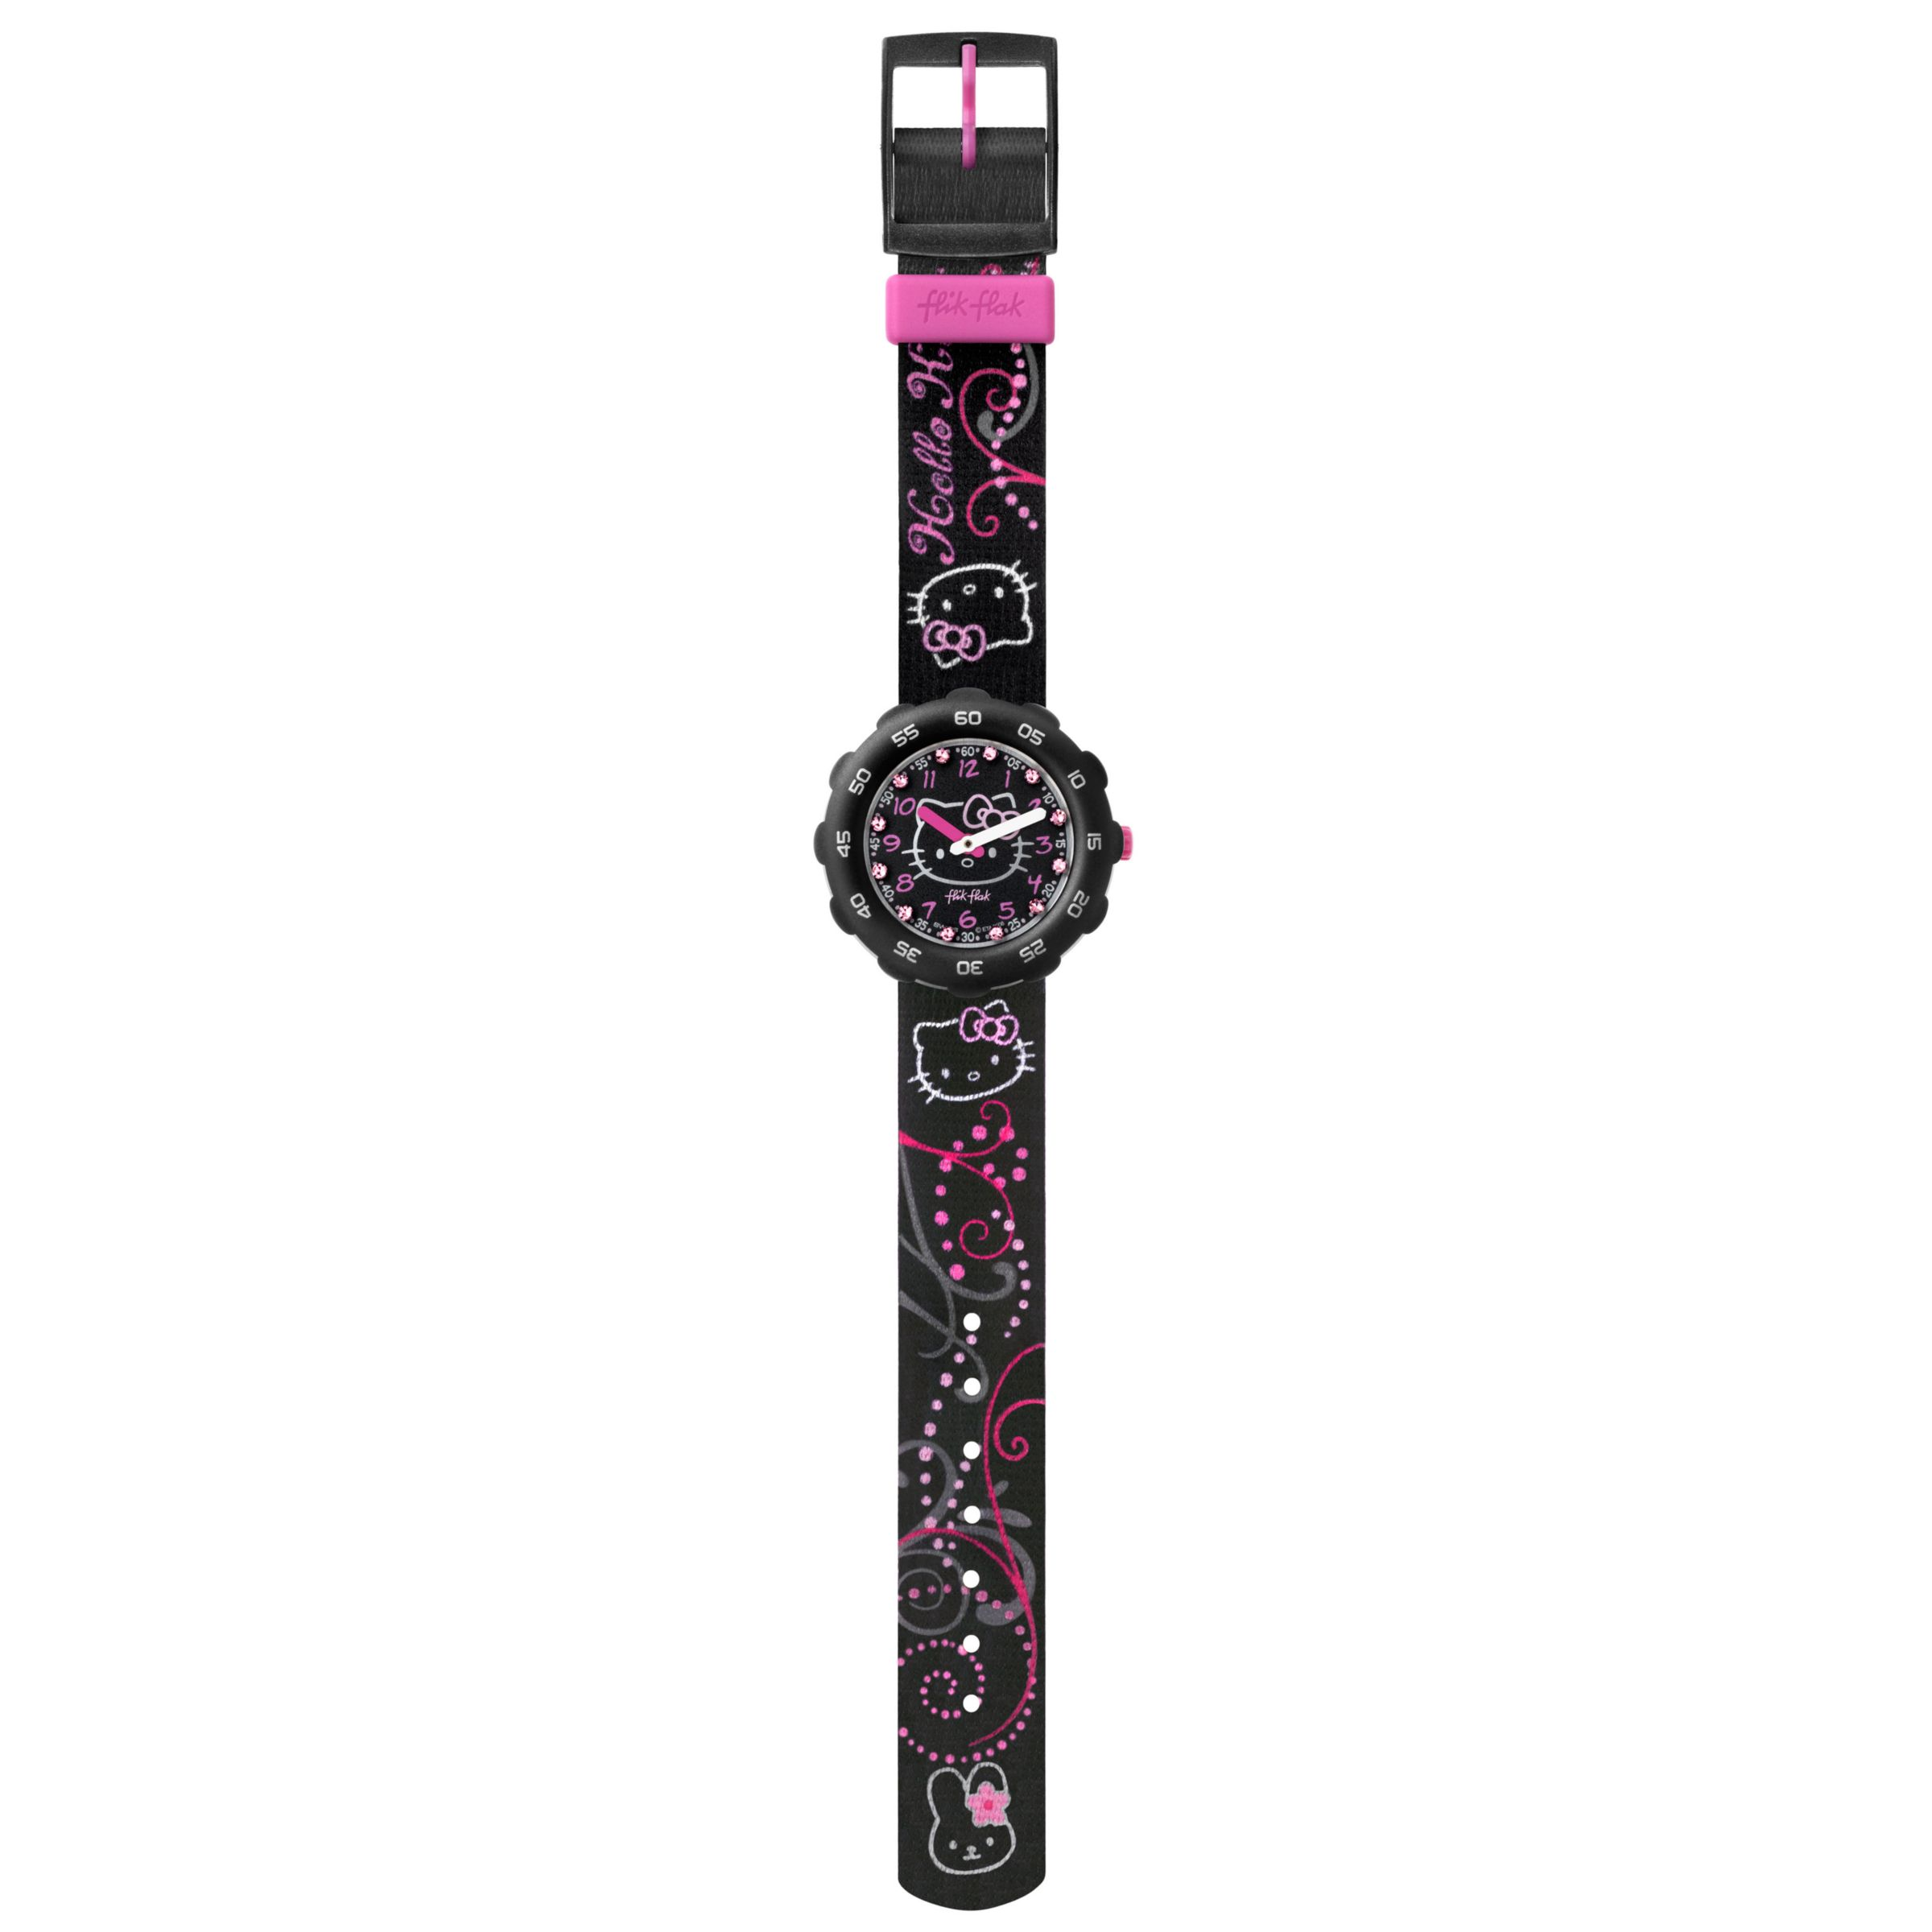 Swatch Flik Flak FLS011 Girl